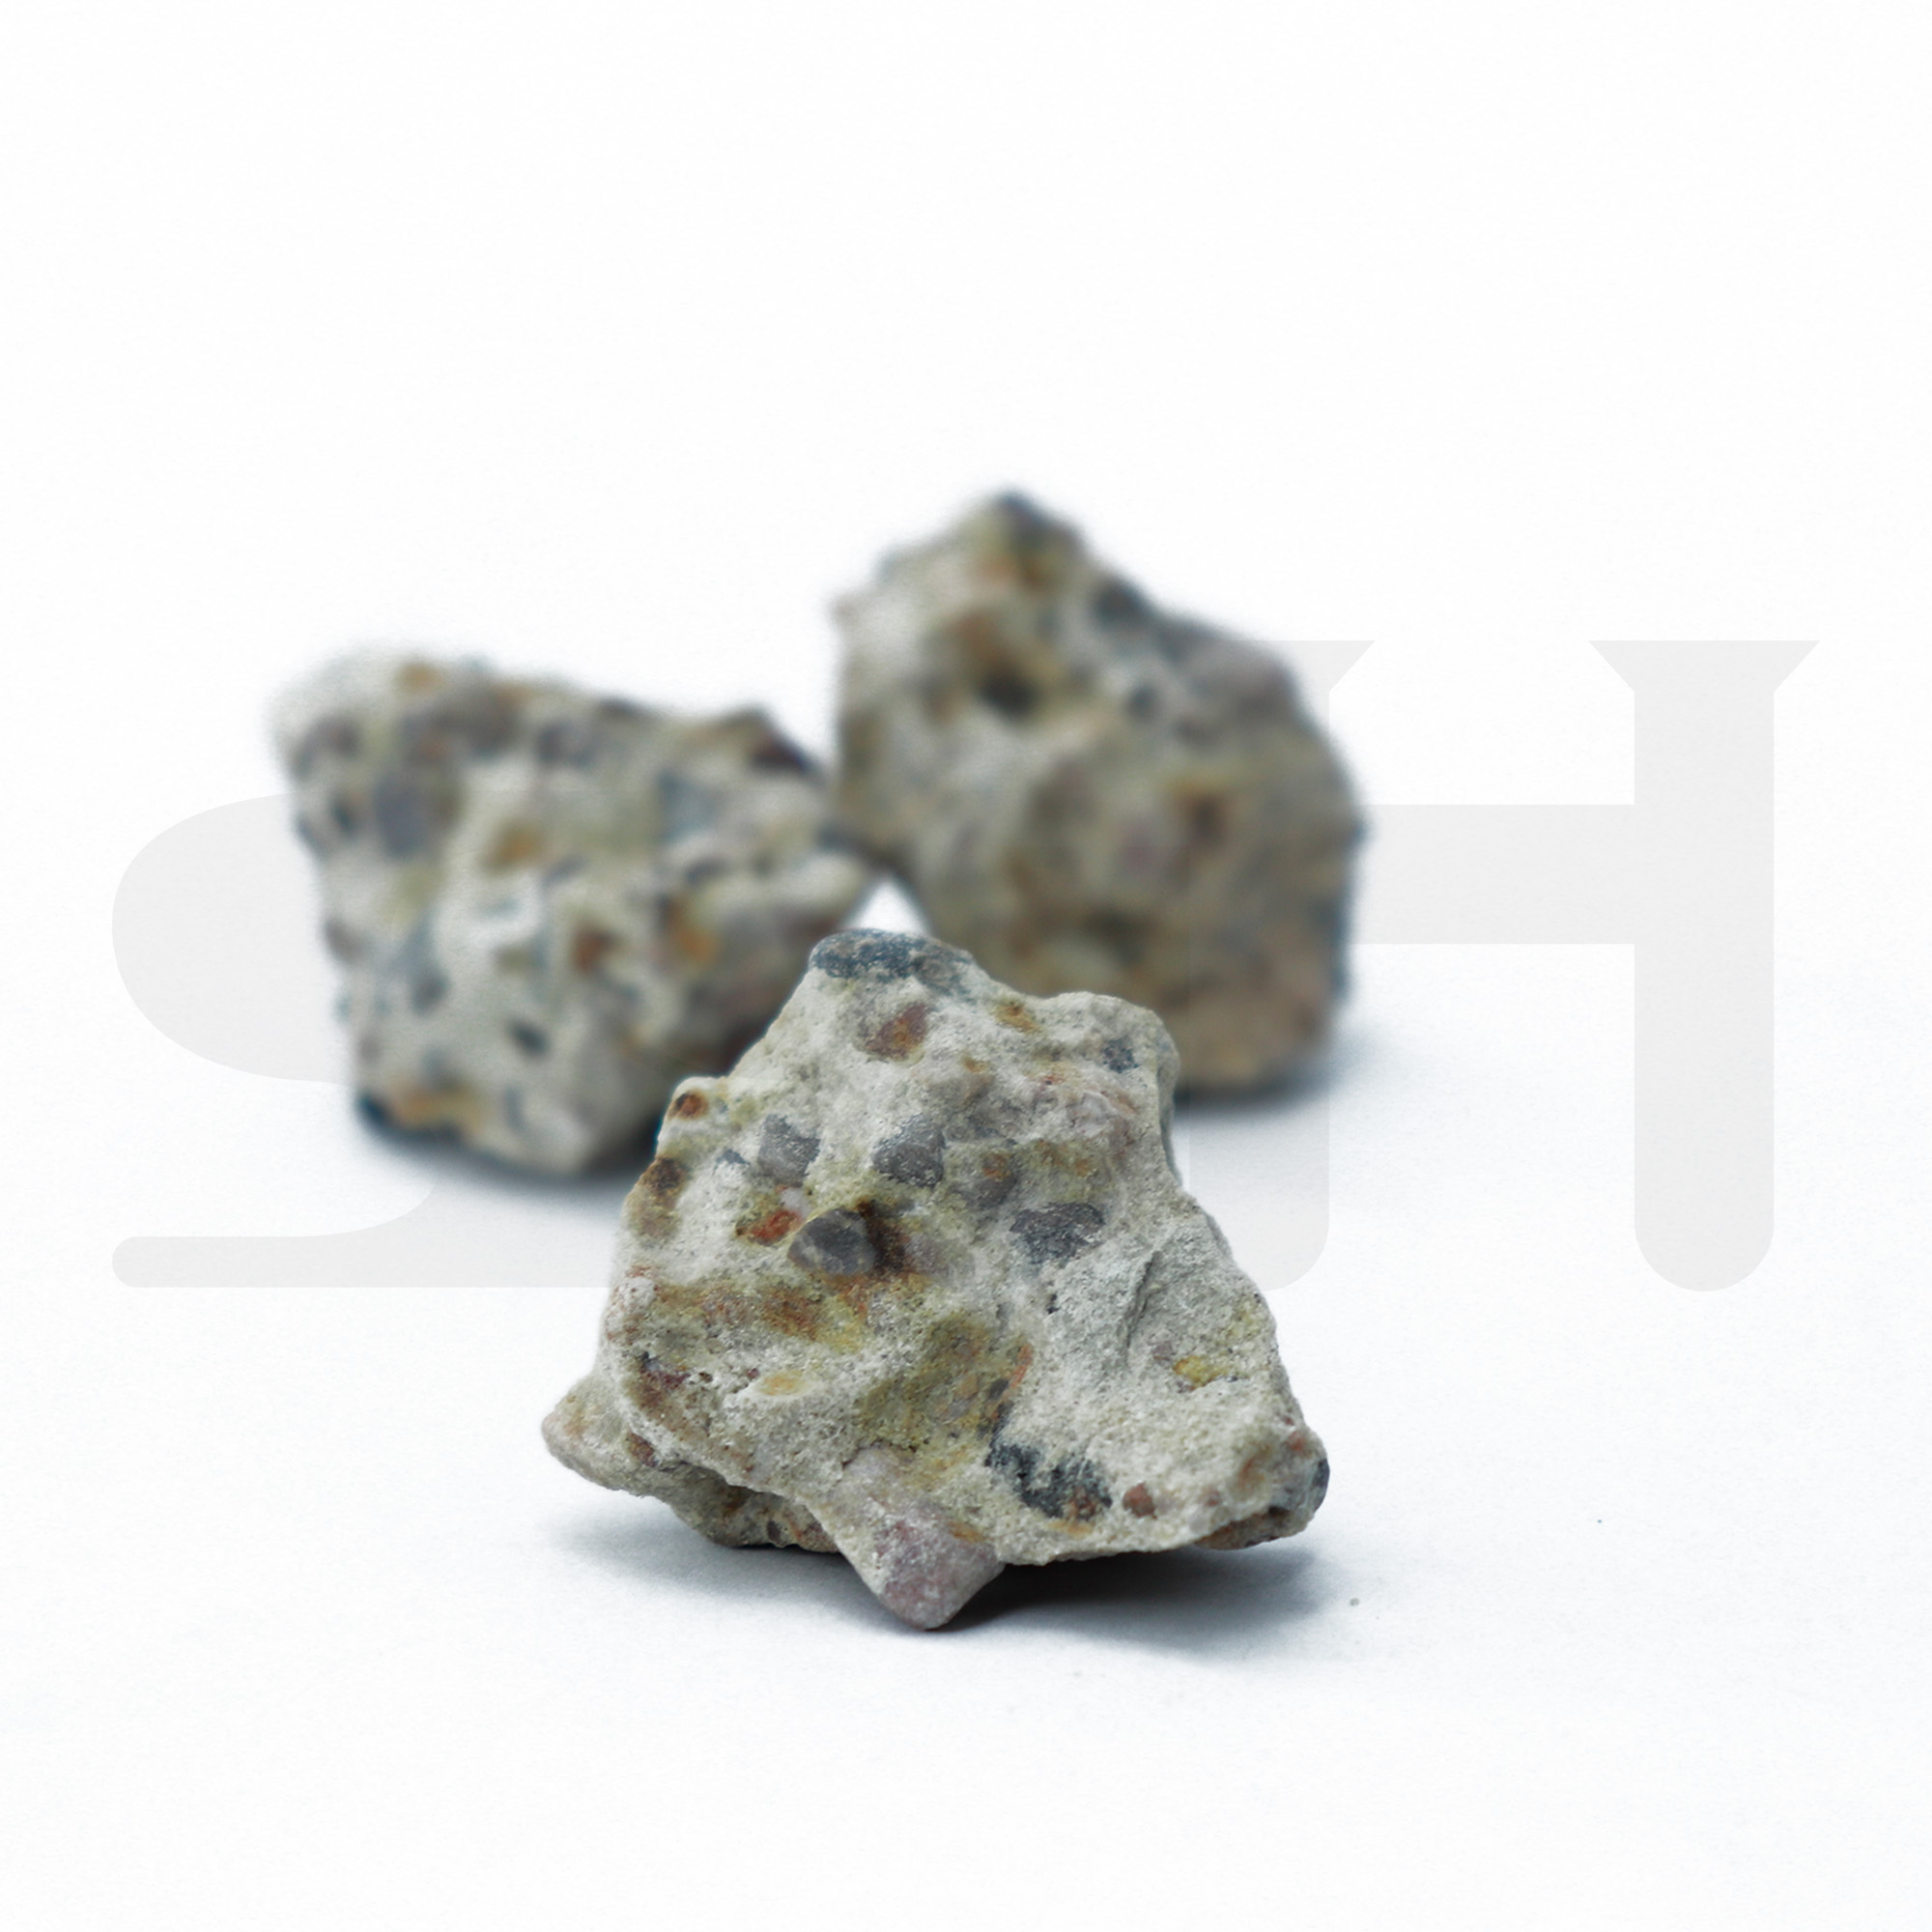 Conglomerate 2.5 cm